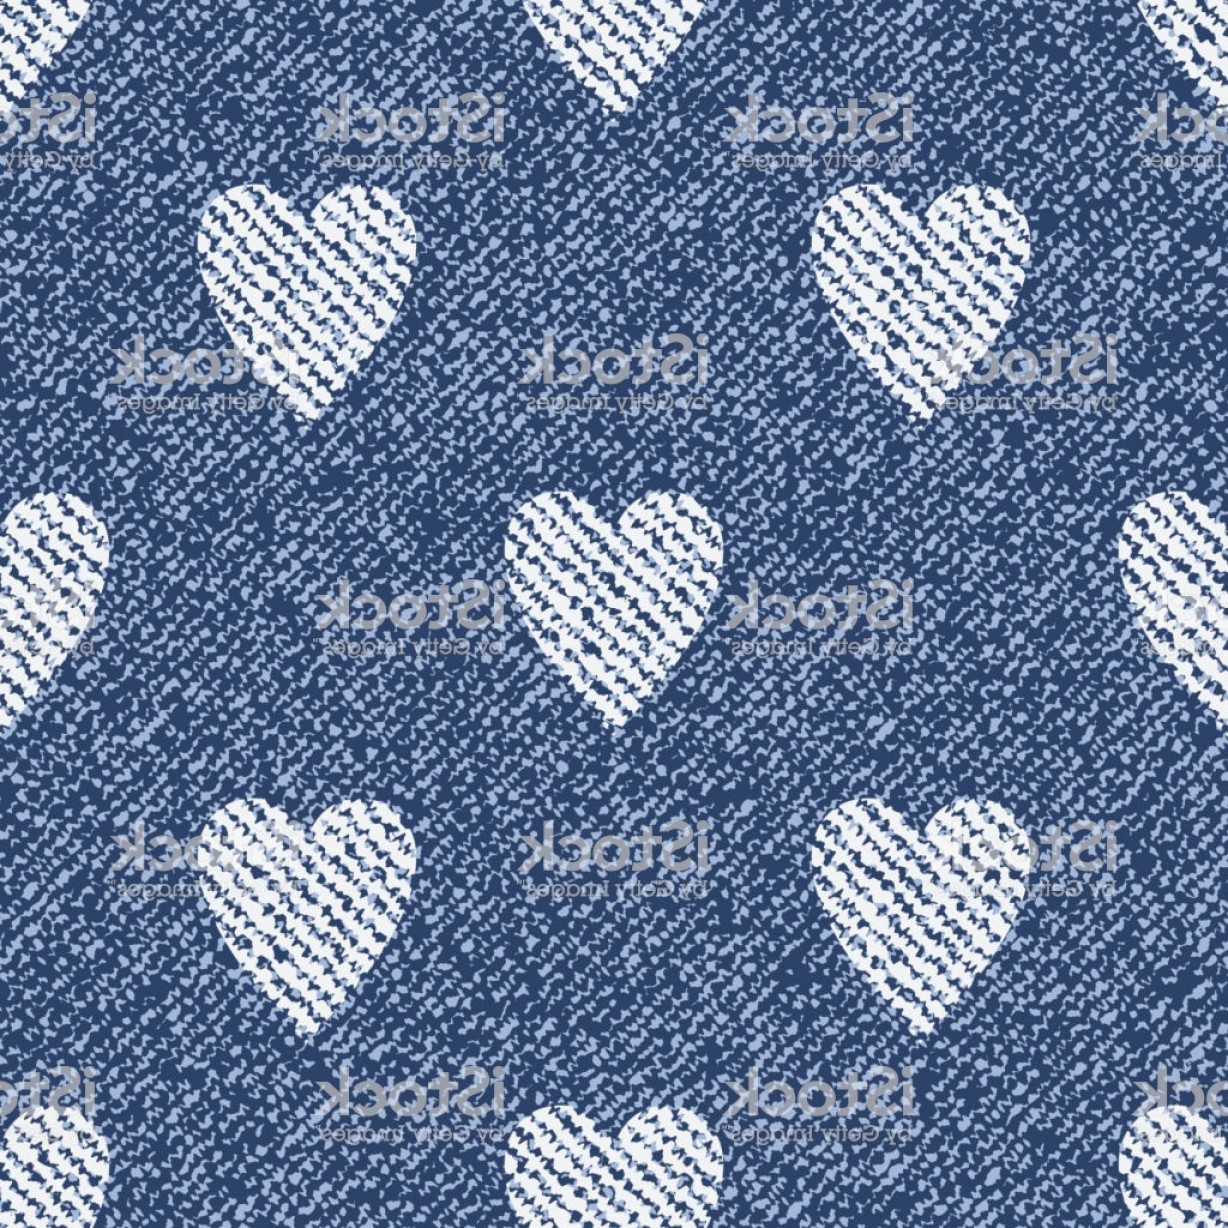 Denim And Pearls Vector: Jeans Background With Hearts Vector Denim Seamless Pattern Blue Jeans Cloth Gm